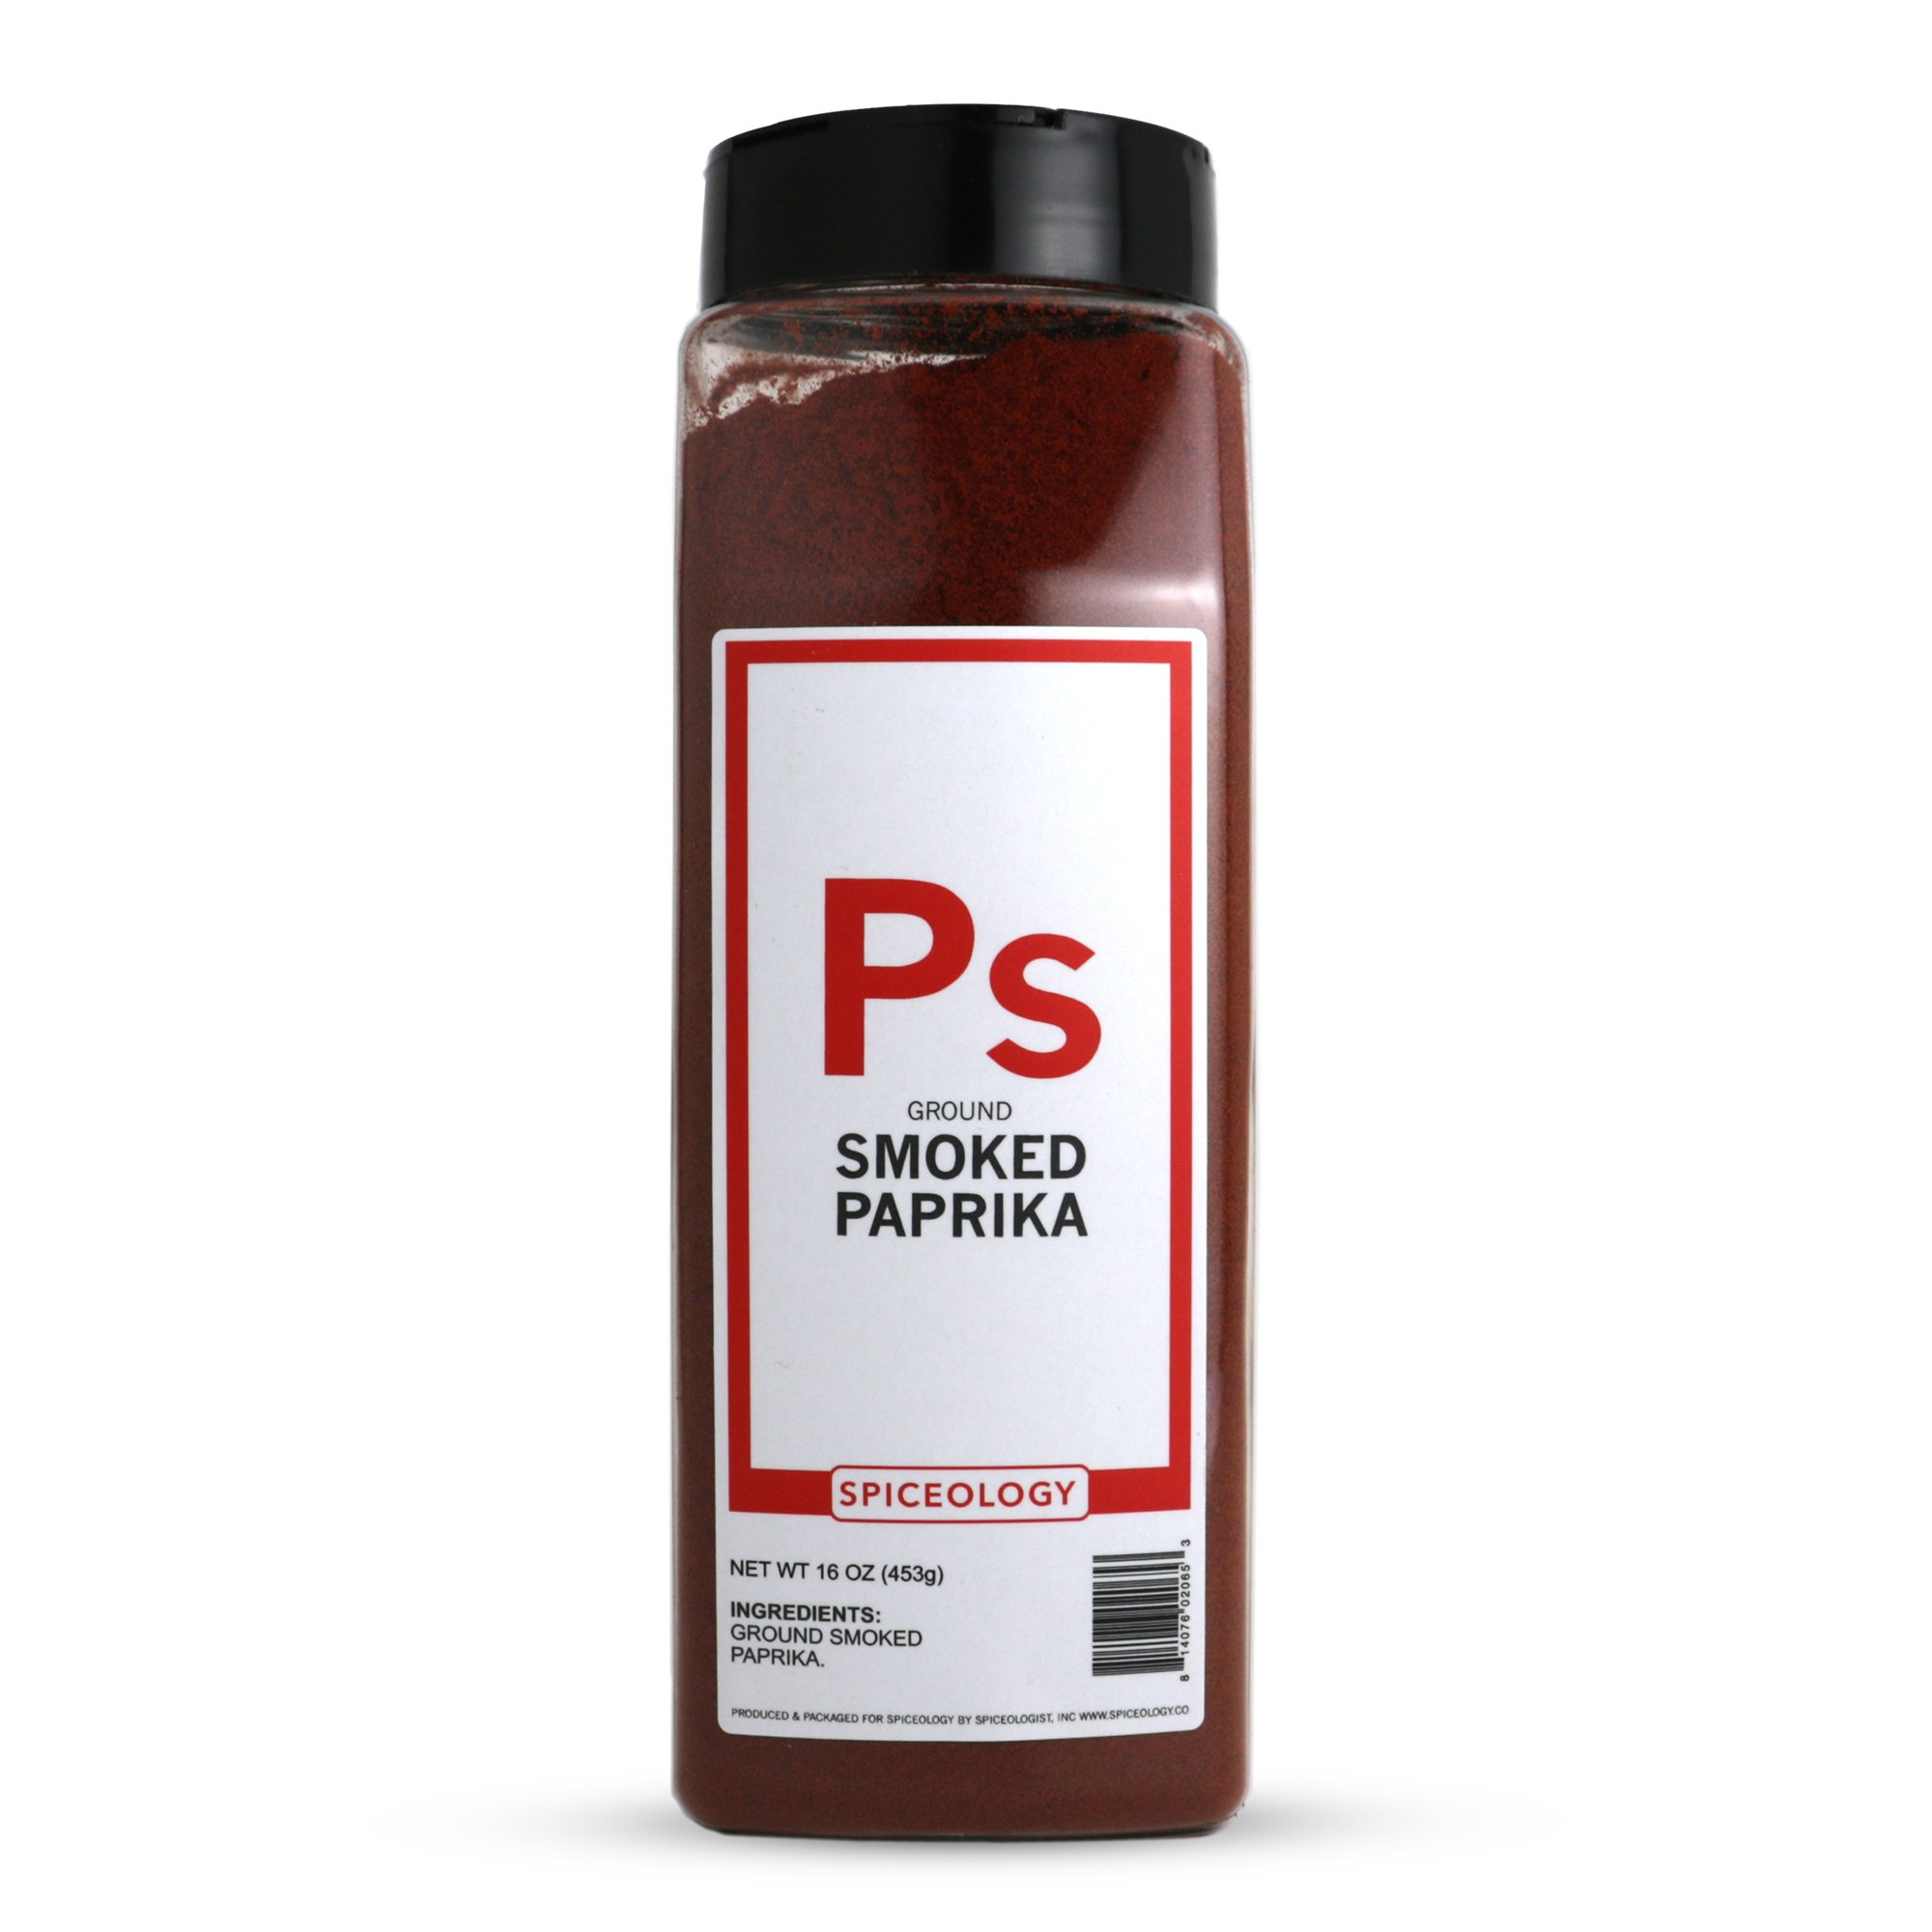 Spiceology Premium Spices - Smoked Paprika Powder, 16 oz